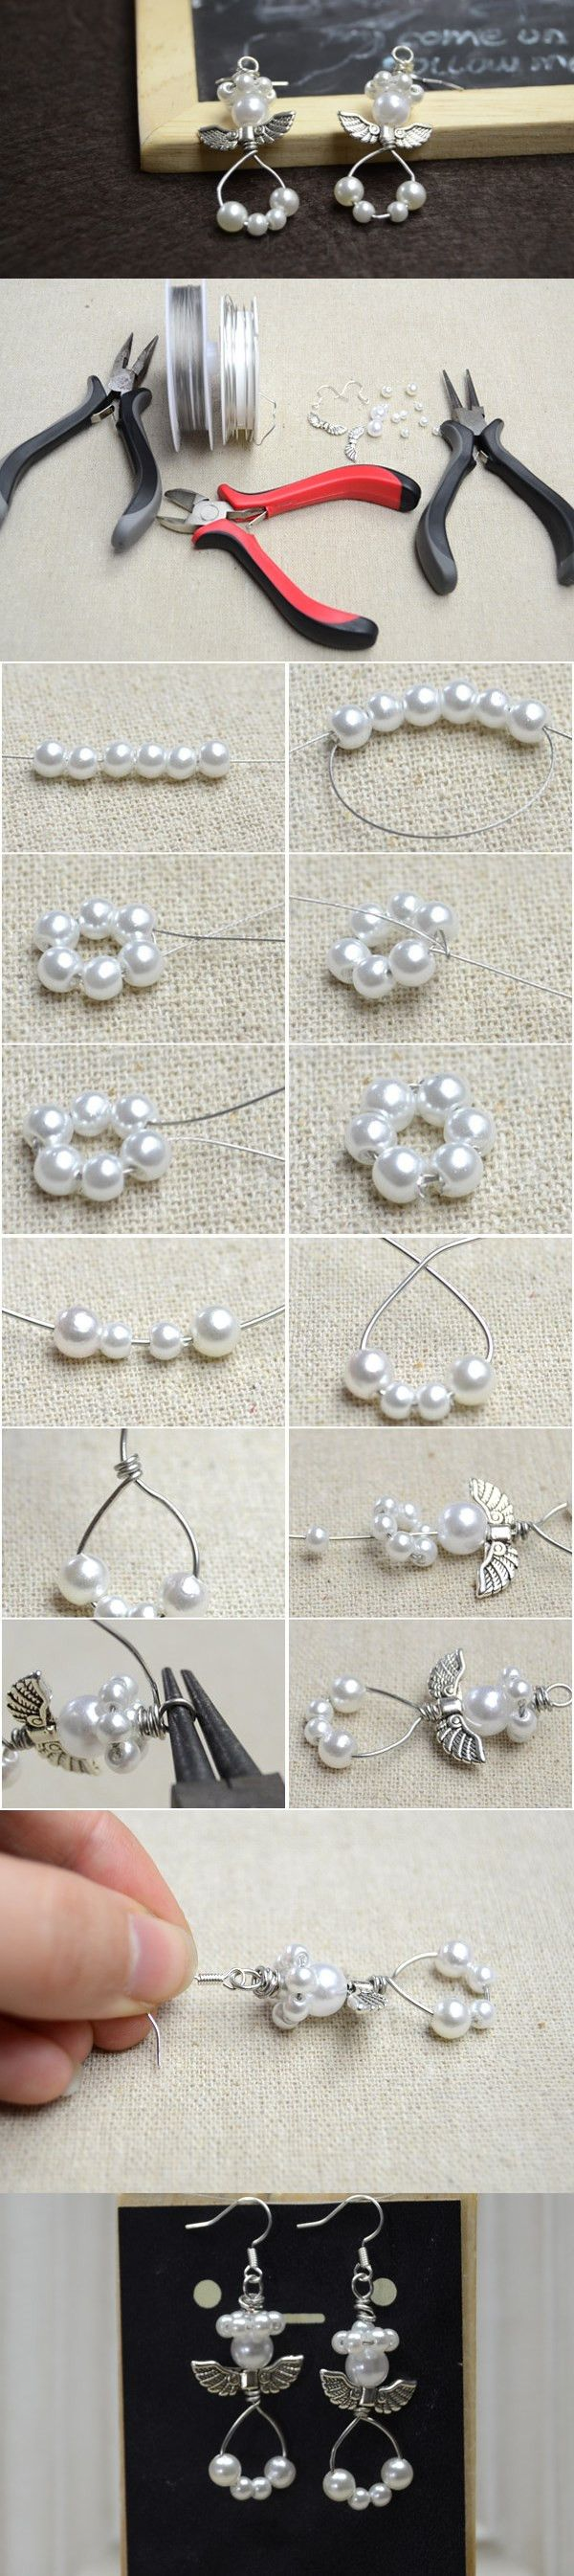 Cute Handmade Pearl Beaded Angel Dangling Earrings DIY #earrings angelearrings #pandahall